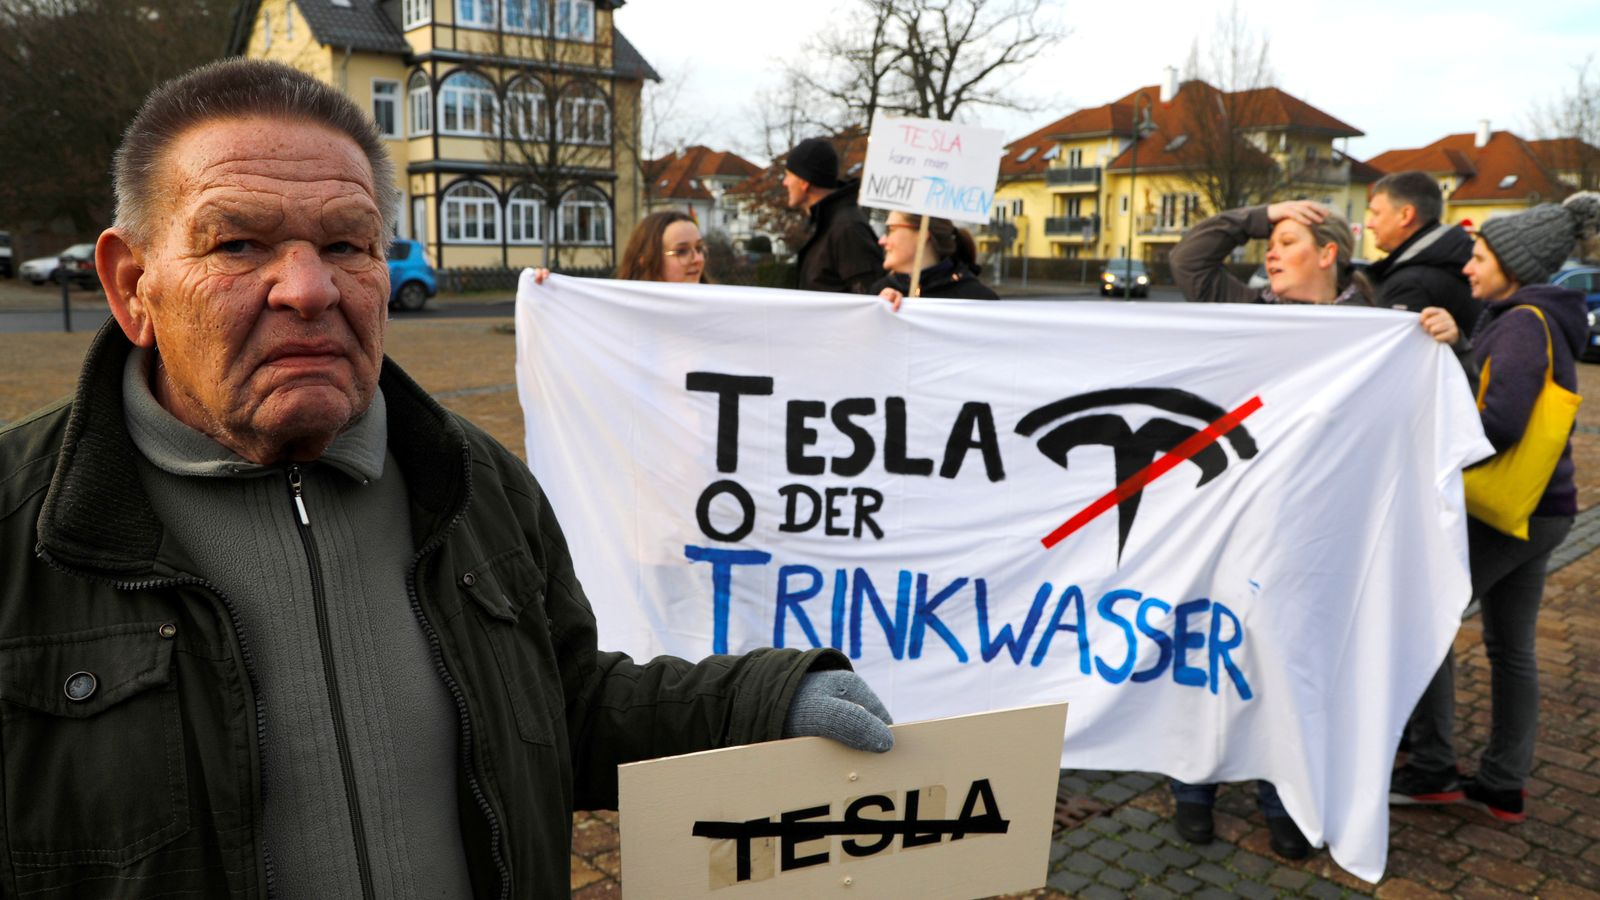 Tesla ordered to stop clearing trees at German factory site